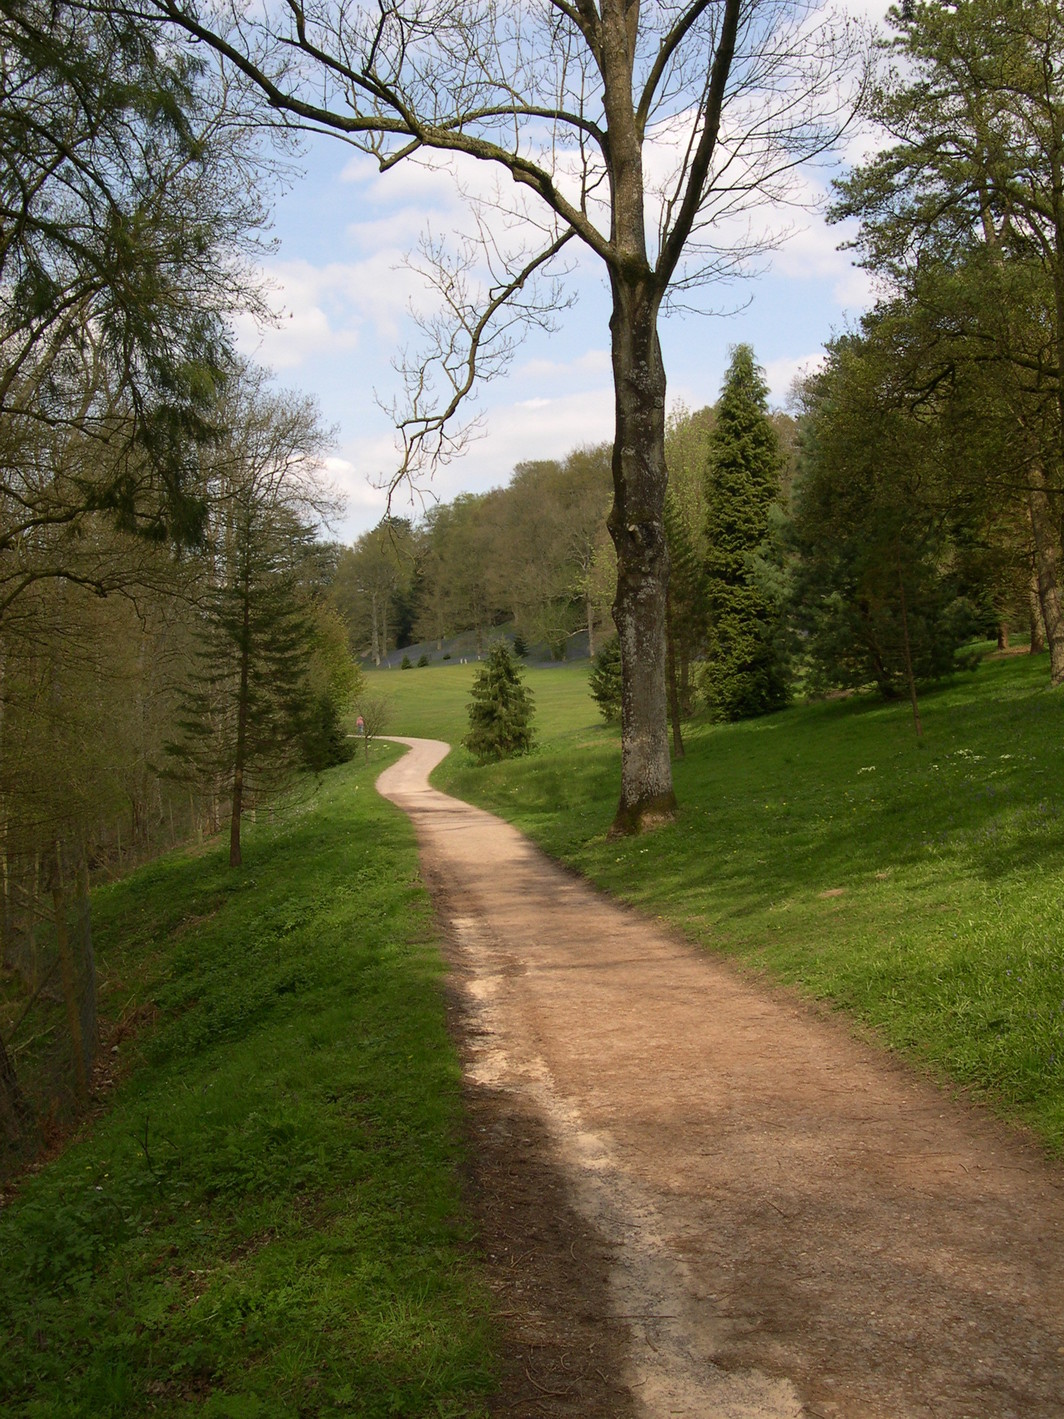 Path at Wakehurst Place Garden, England, 2004.